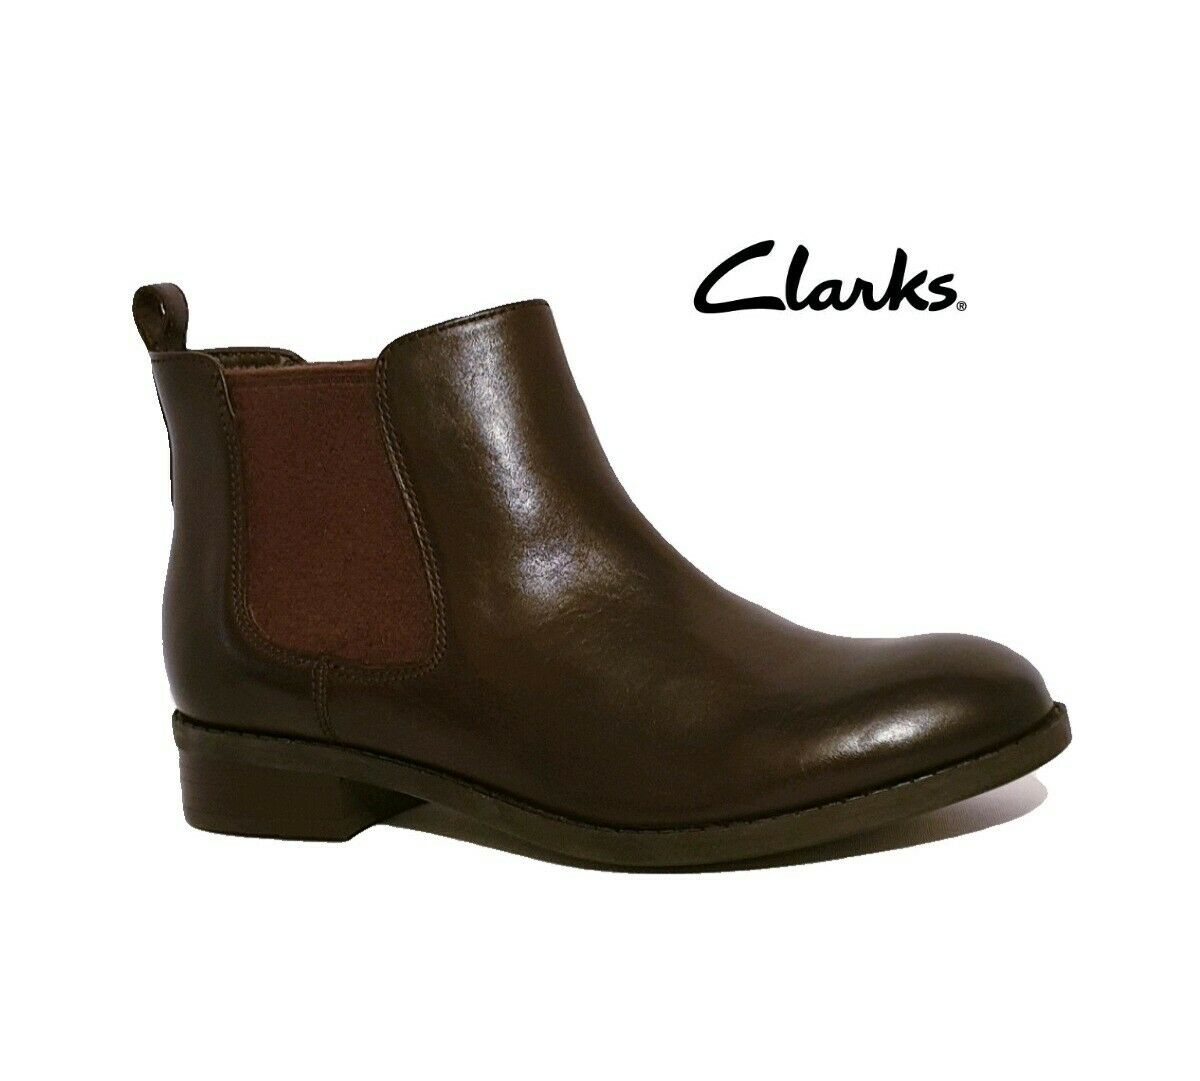 CLARKS PITA SEDONA DARK BROWN GENUINE LEATHER CHELSEA ANKLE BOOTS   LADIES